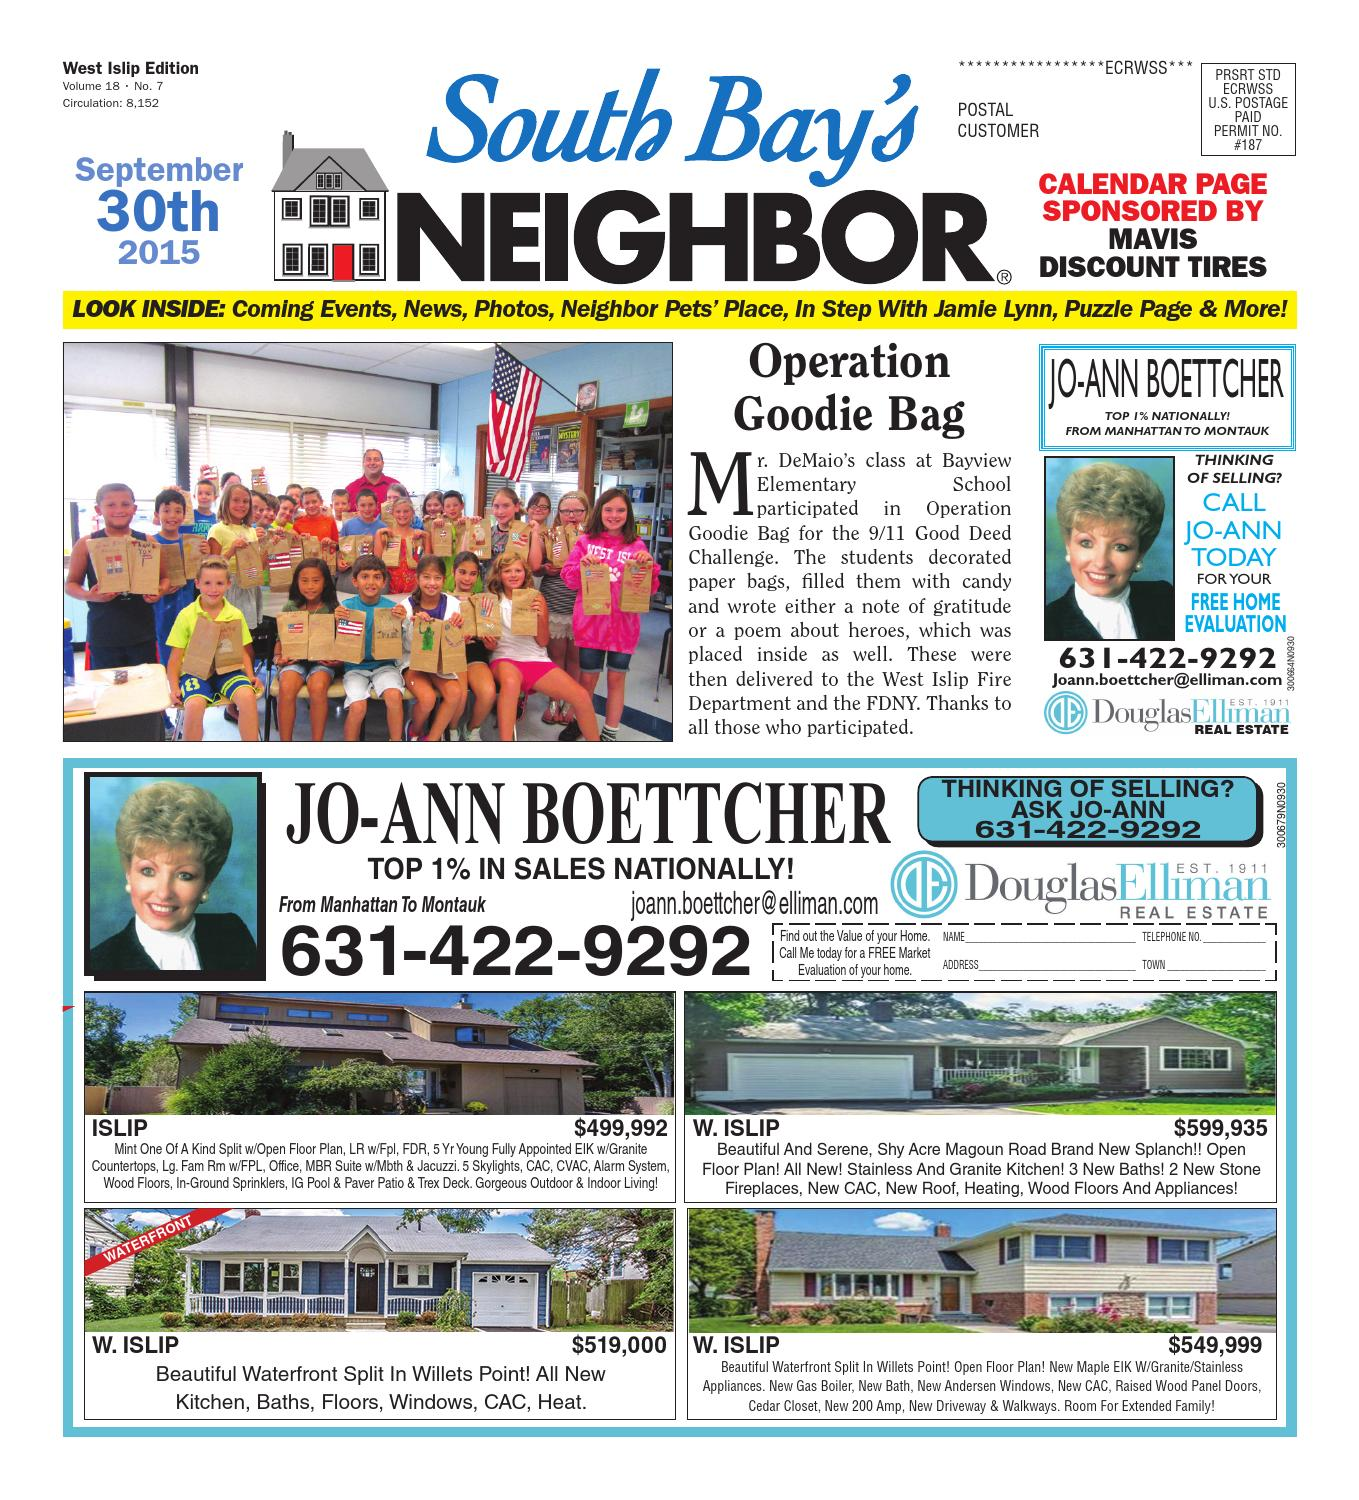 September 30 2015 West Islip by South Bay s Neighbor Newspapers issuu